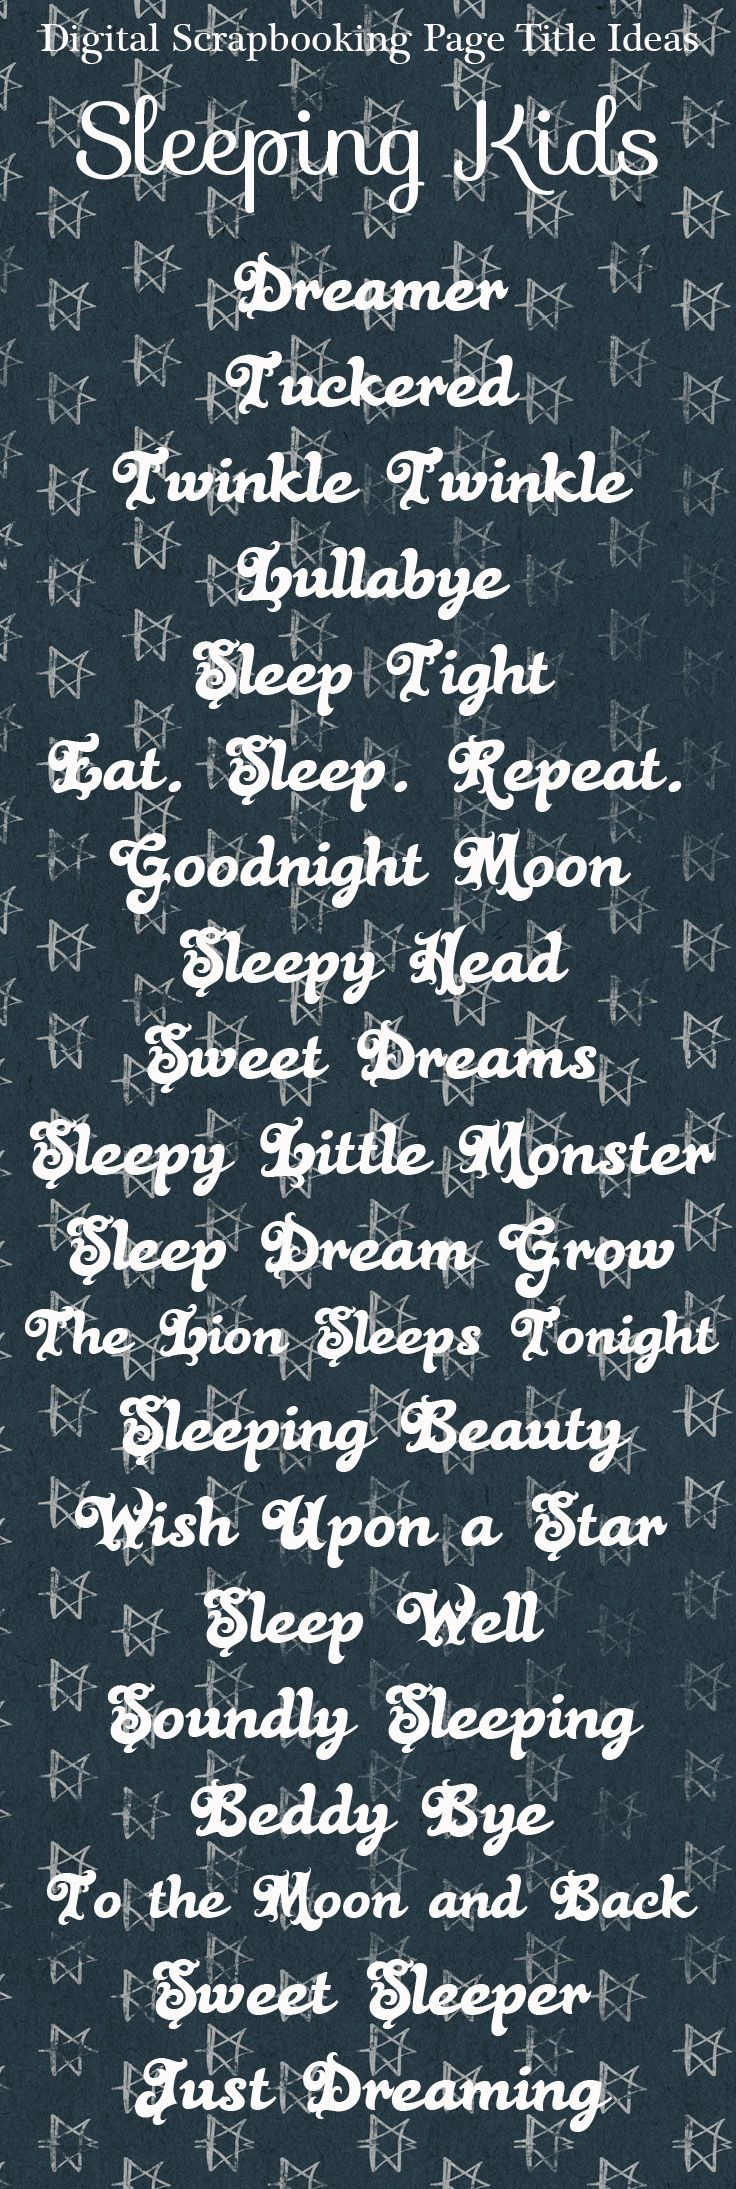 Scrapbook ideas and themes - Sleeping Kids Scrapbook Page Title Ideas Scrapbook Titles Baby Scrapbooking Layouts Pinterest Ideas Kid And Scrapbook Pages